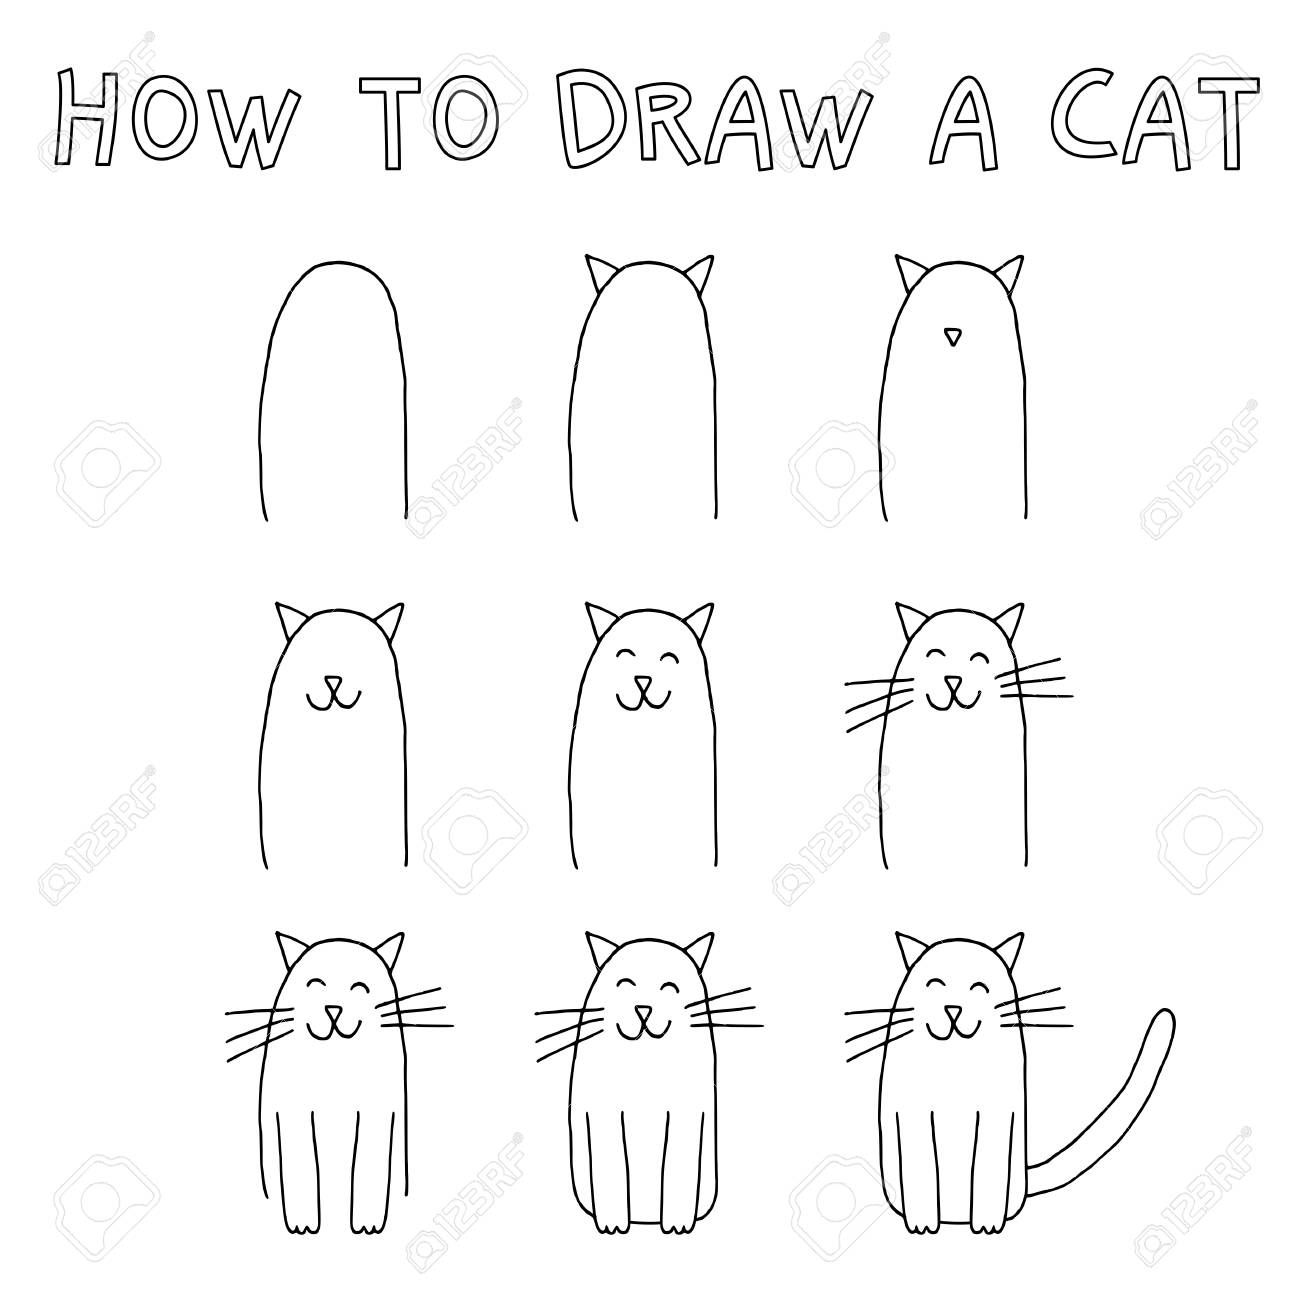 How to draw a cat step by step stock vector 88393489